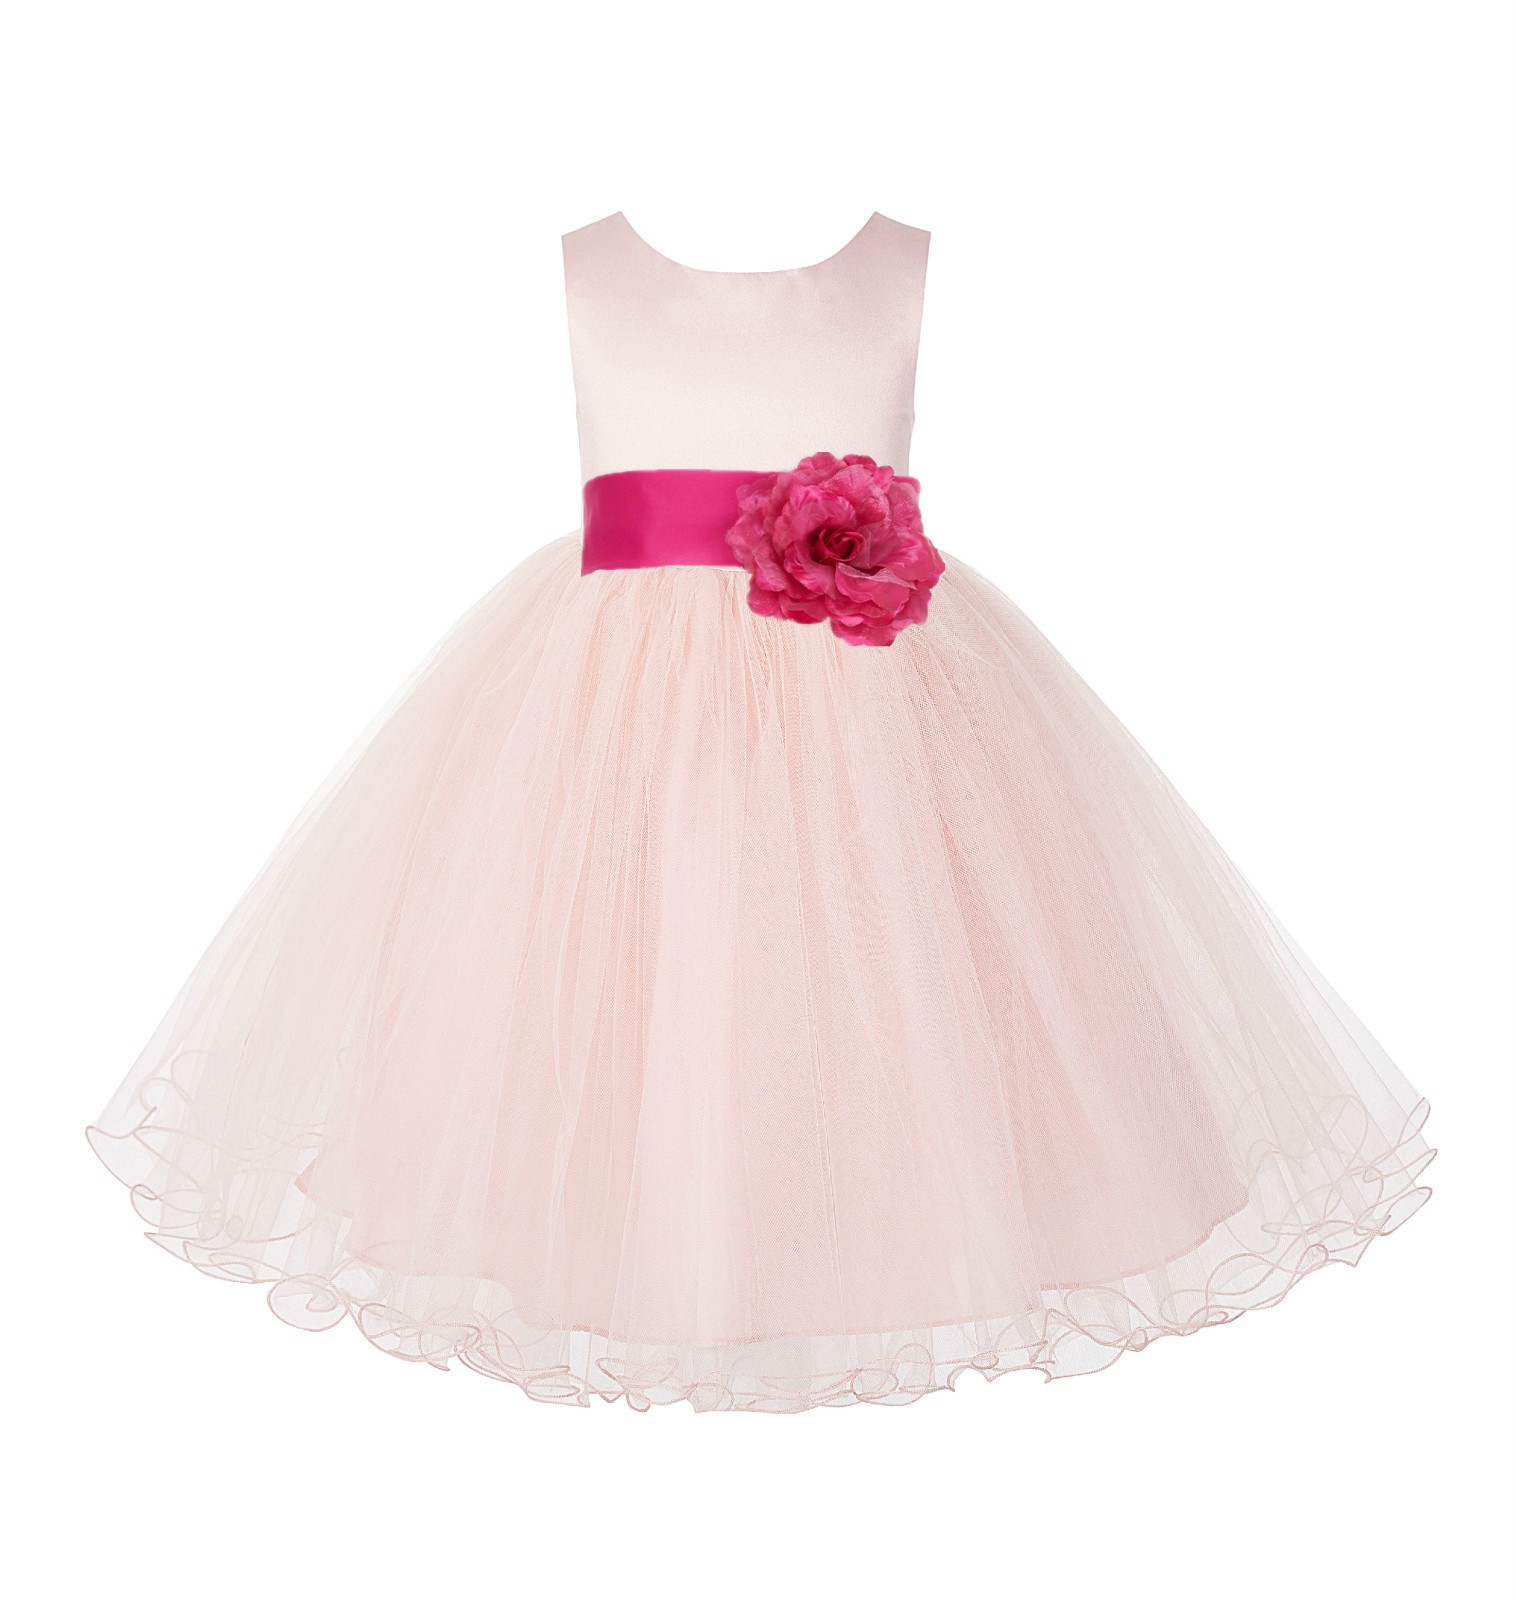 Blush Pink / Fuchsia Tulle Rattail Edge Flower Girl Dress Pageant Recital 829S